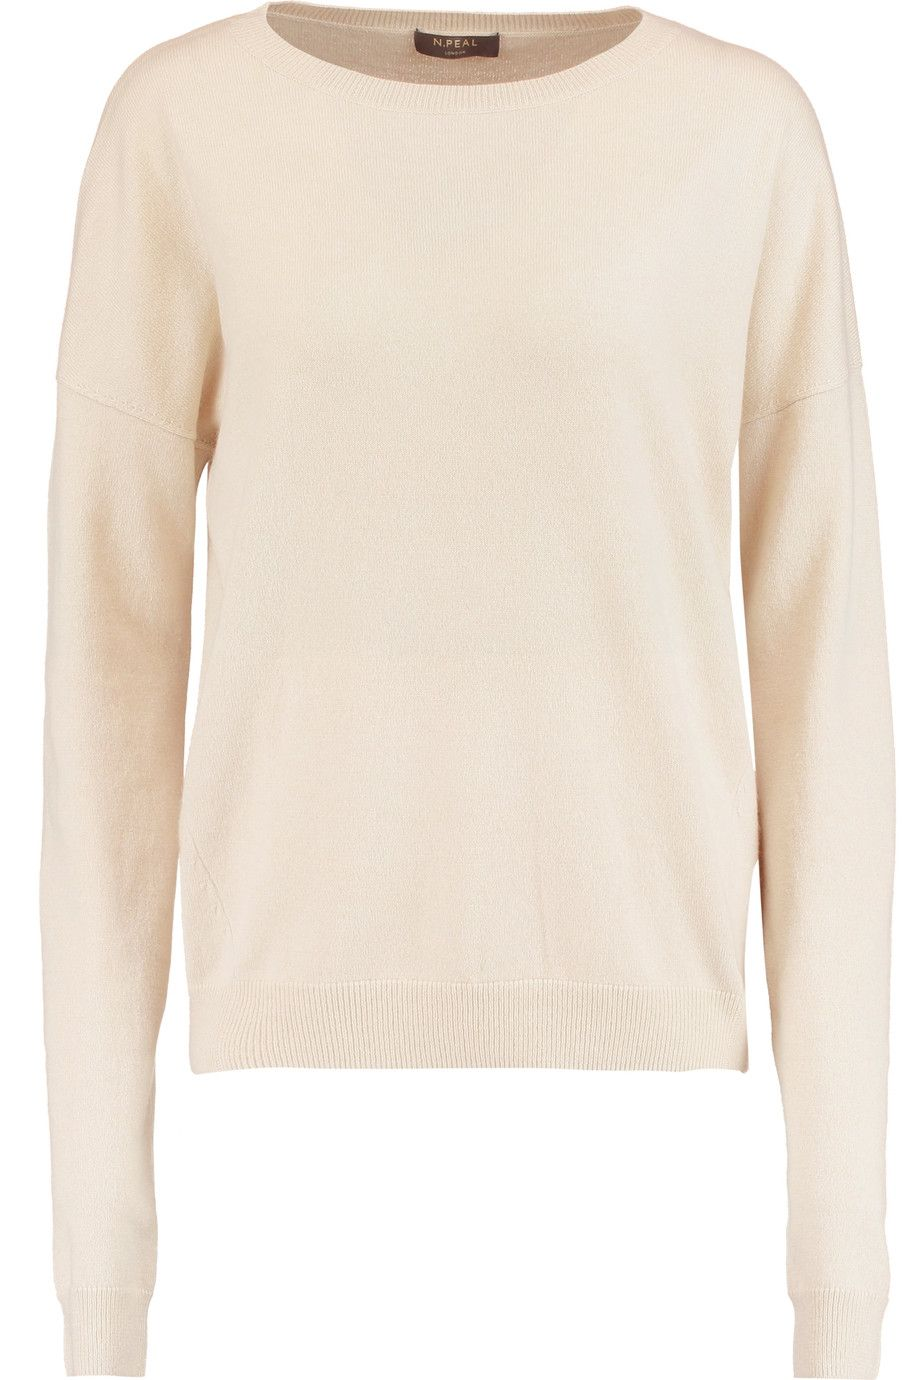 Shop on-sale N.Peal Cashmere Cashmere sweater. Browse other ...